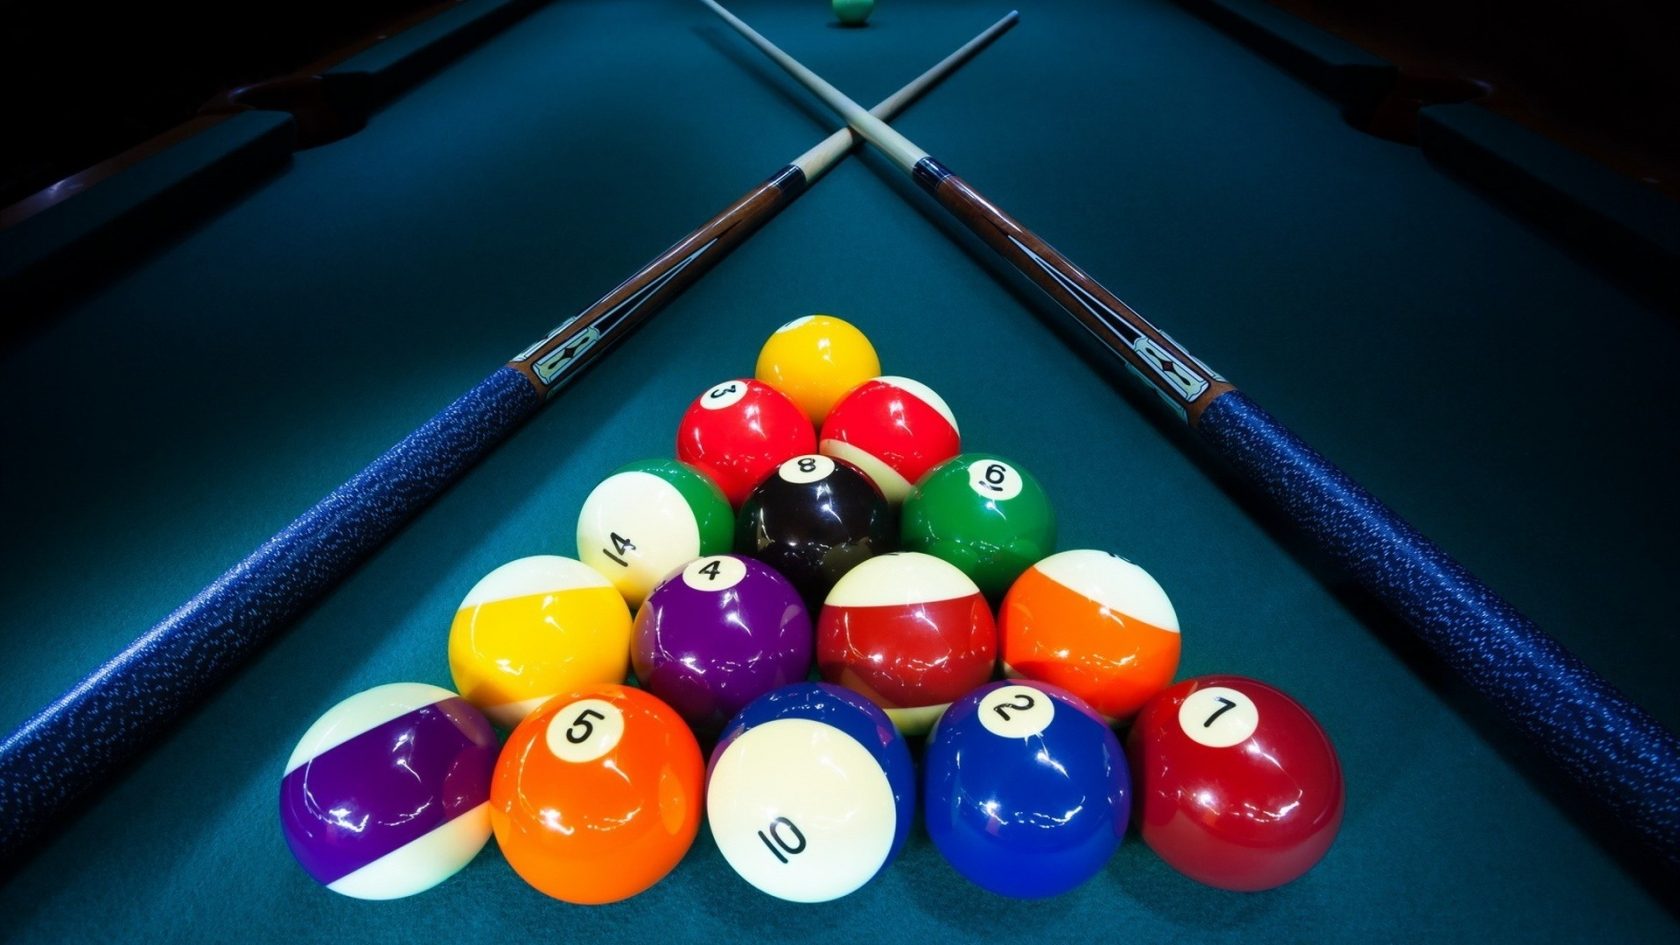 Billiards Game Table for 1680 x 945 HDTV resolution